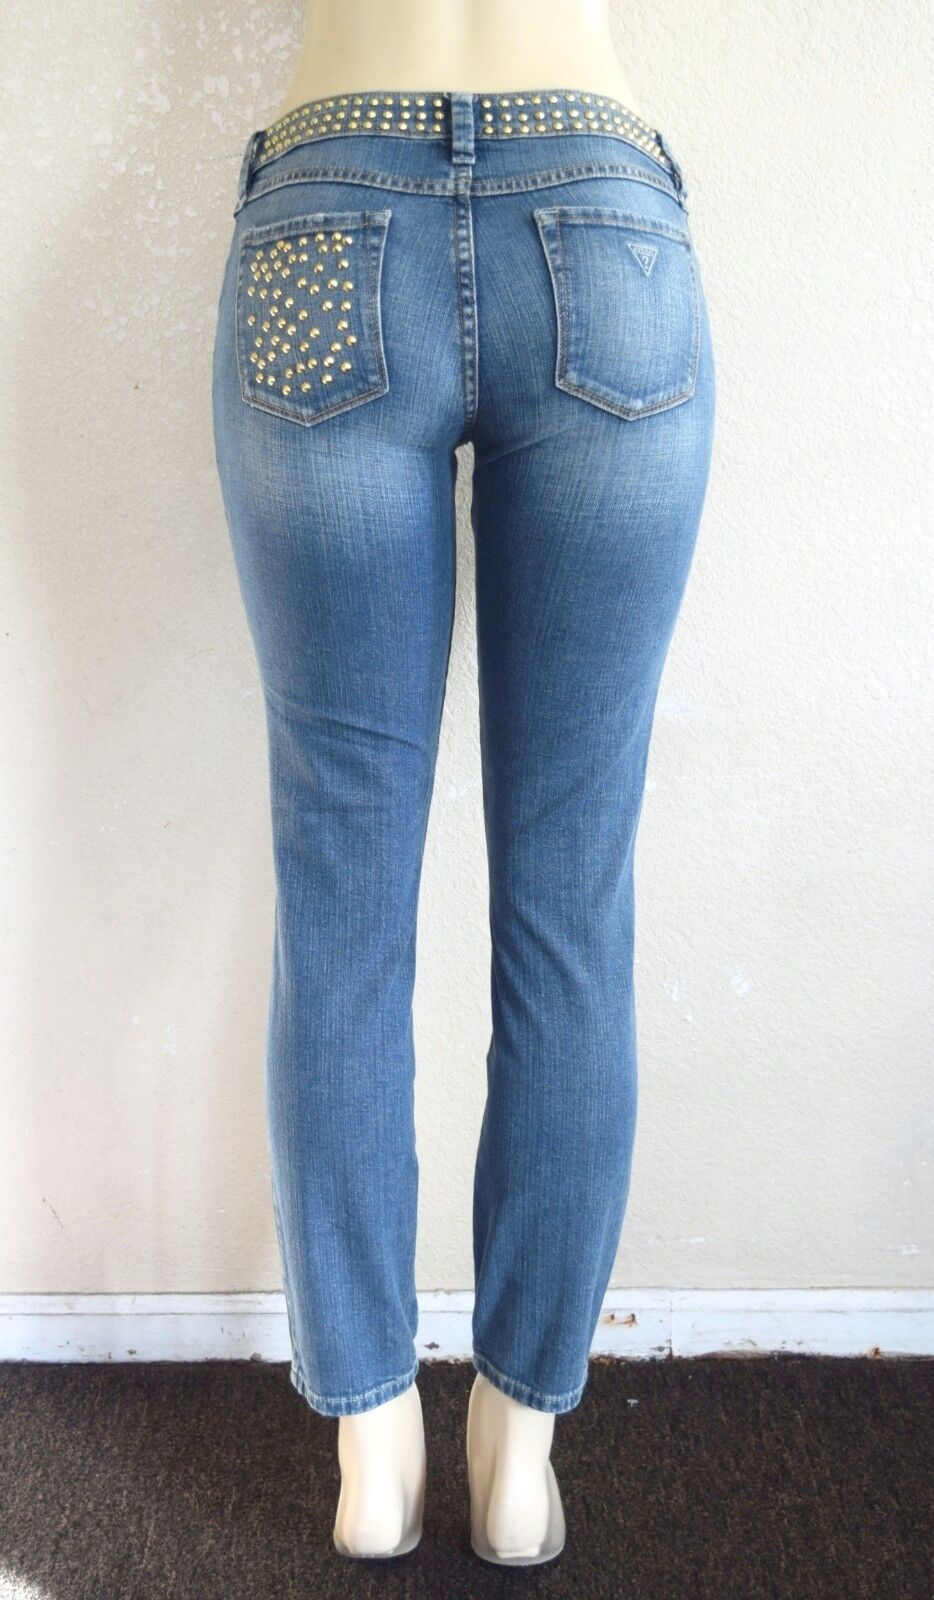 GUESS Women's Brittney Ankle Skinny Jeans with Studs – Mid-bluee Wash sz 27